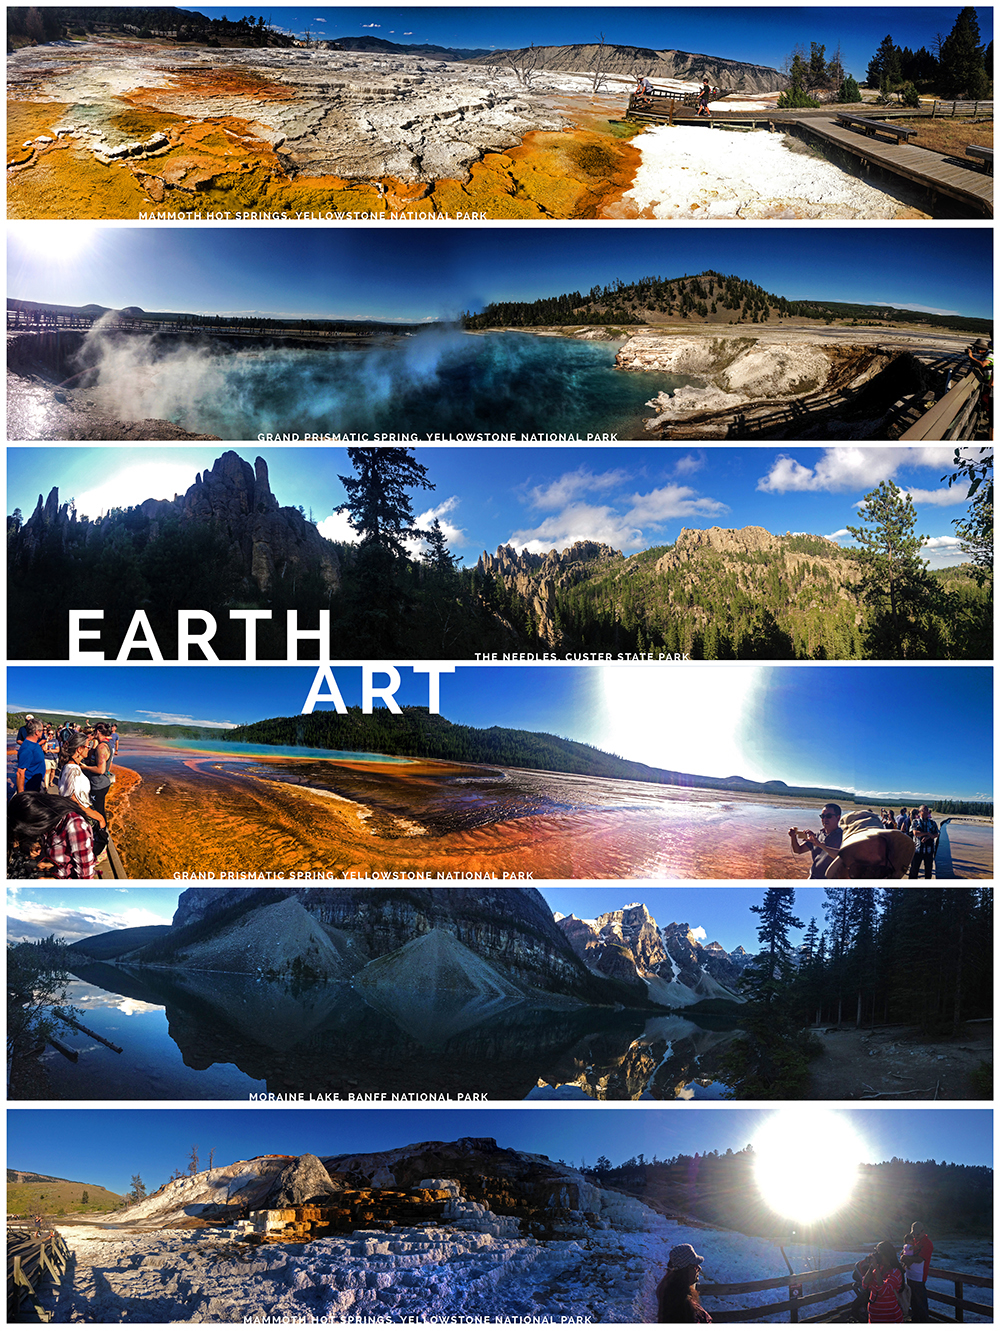 American Southwest 2016 Panorama Poster_04_01